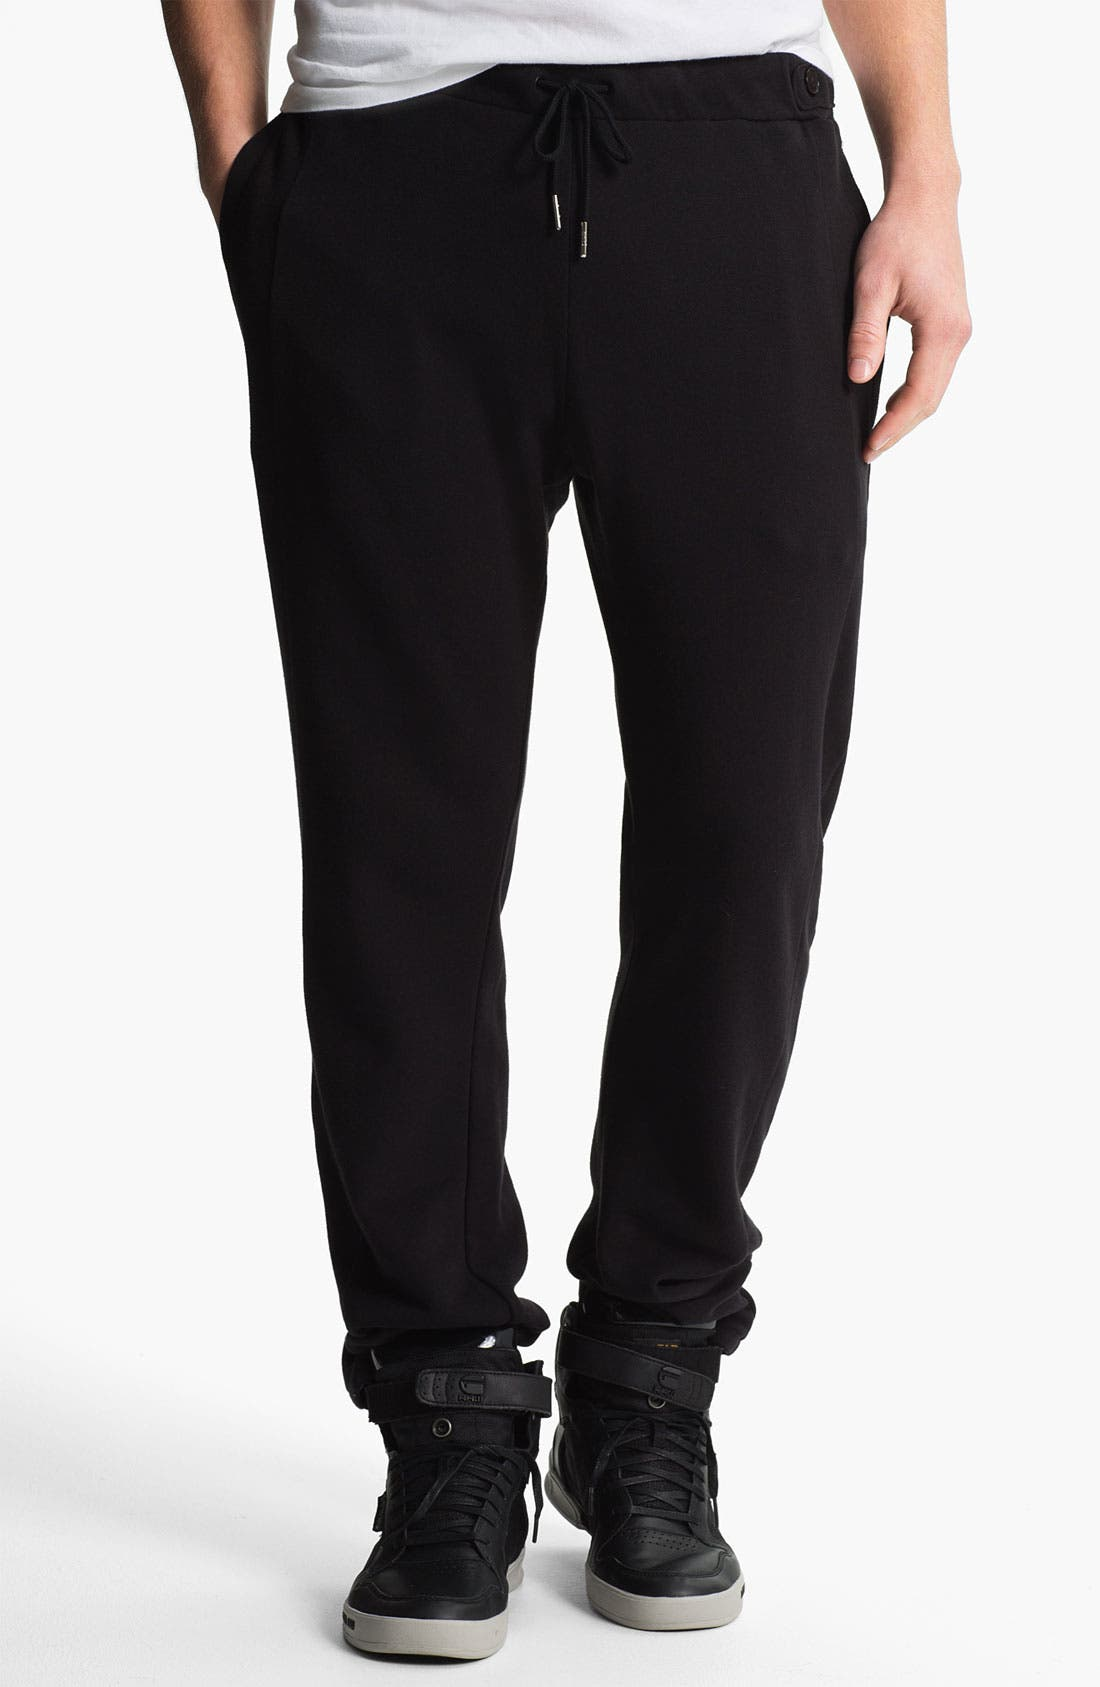 Alternate Image 1 Selected - adidas SLVR 'Curved' French Terry Cotton Sweatpants